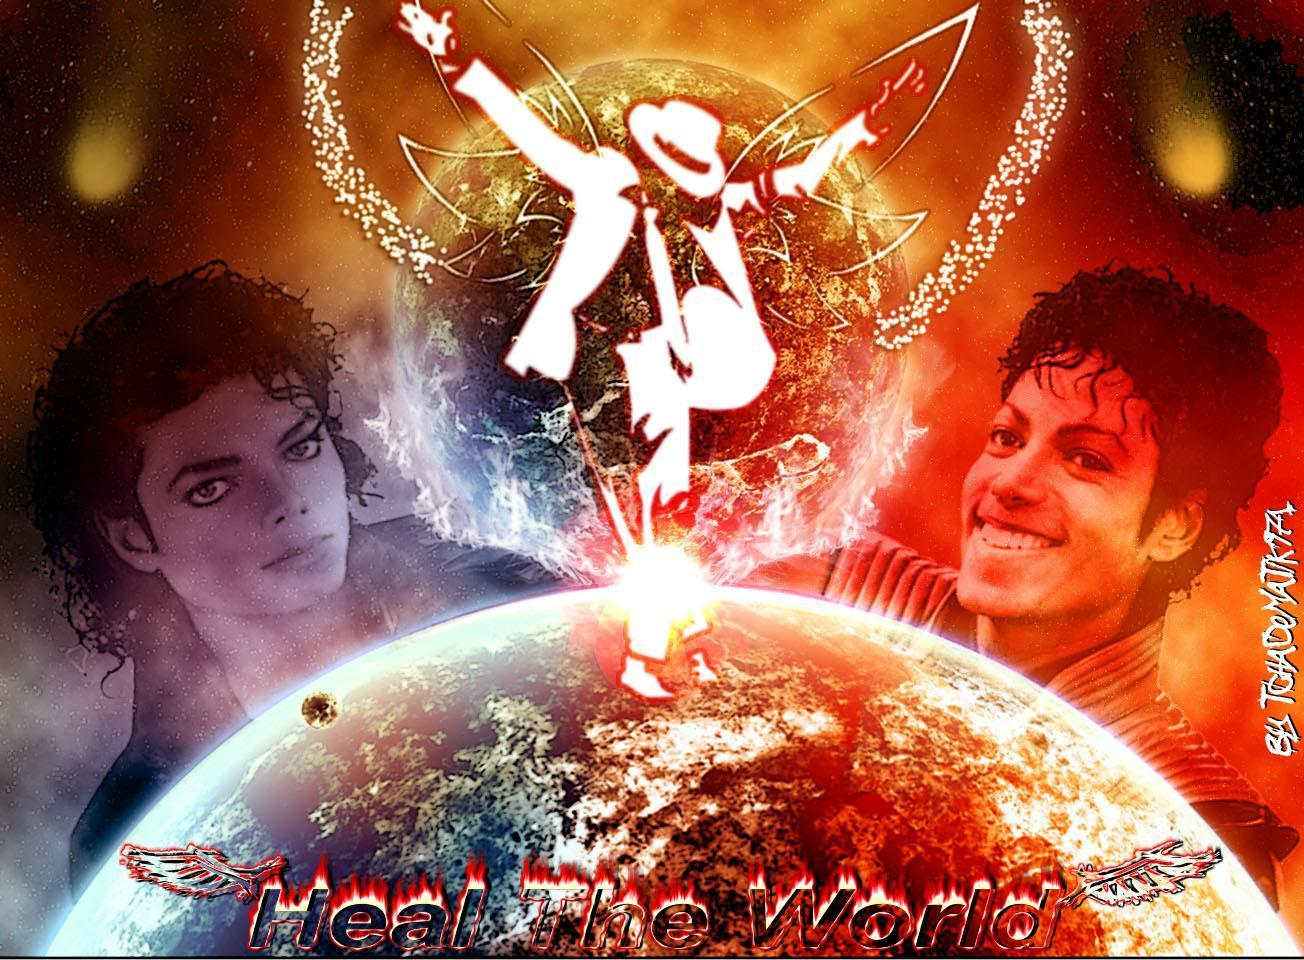 DIA DE LA TIERRA HOMENAJE PARA MIKE Heal-The-World-michael-jackson-7984220-1304-960